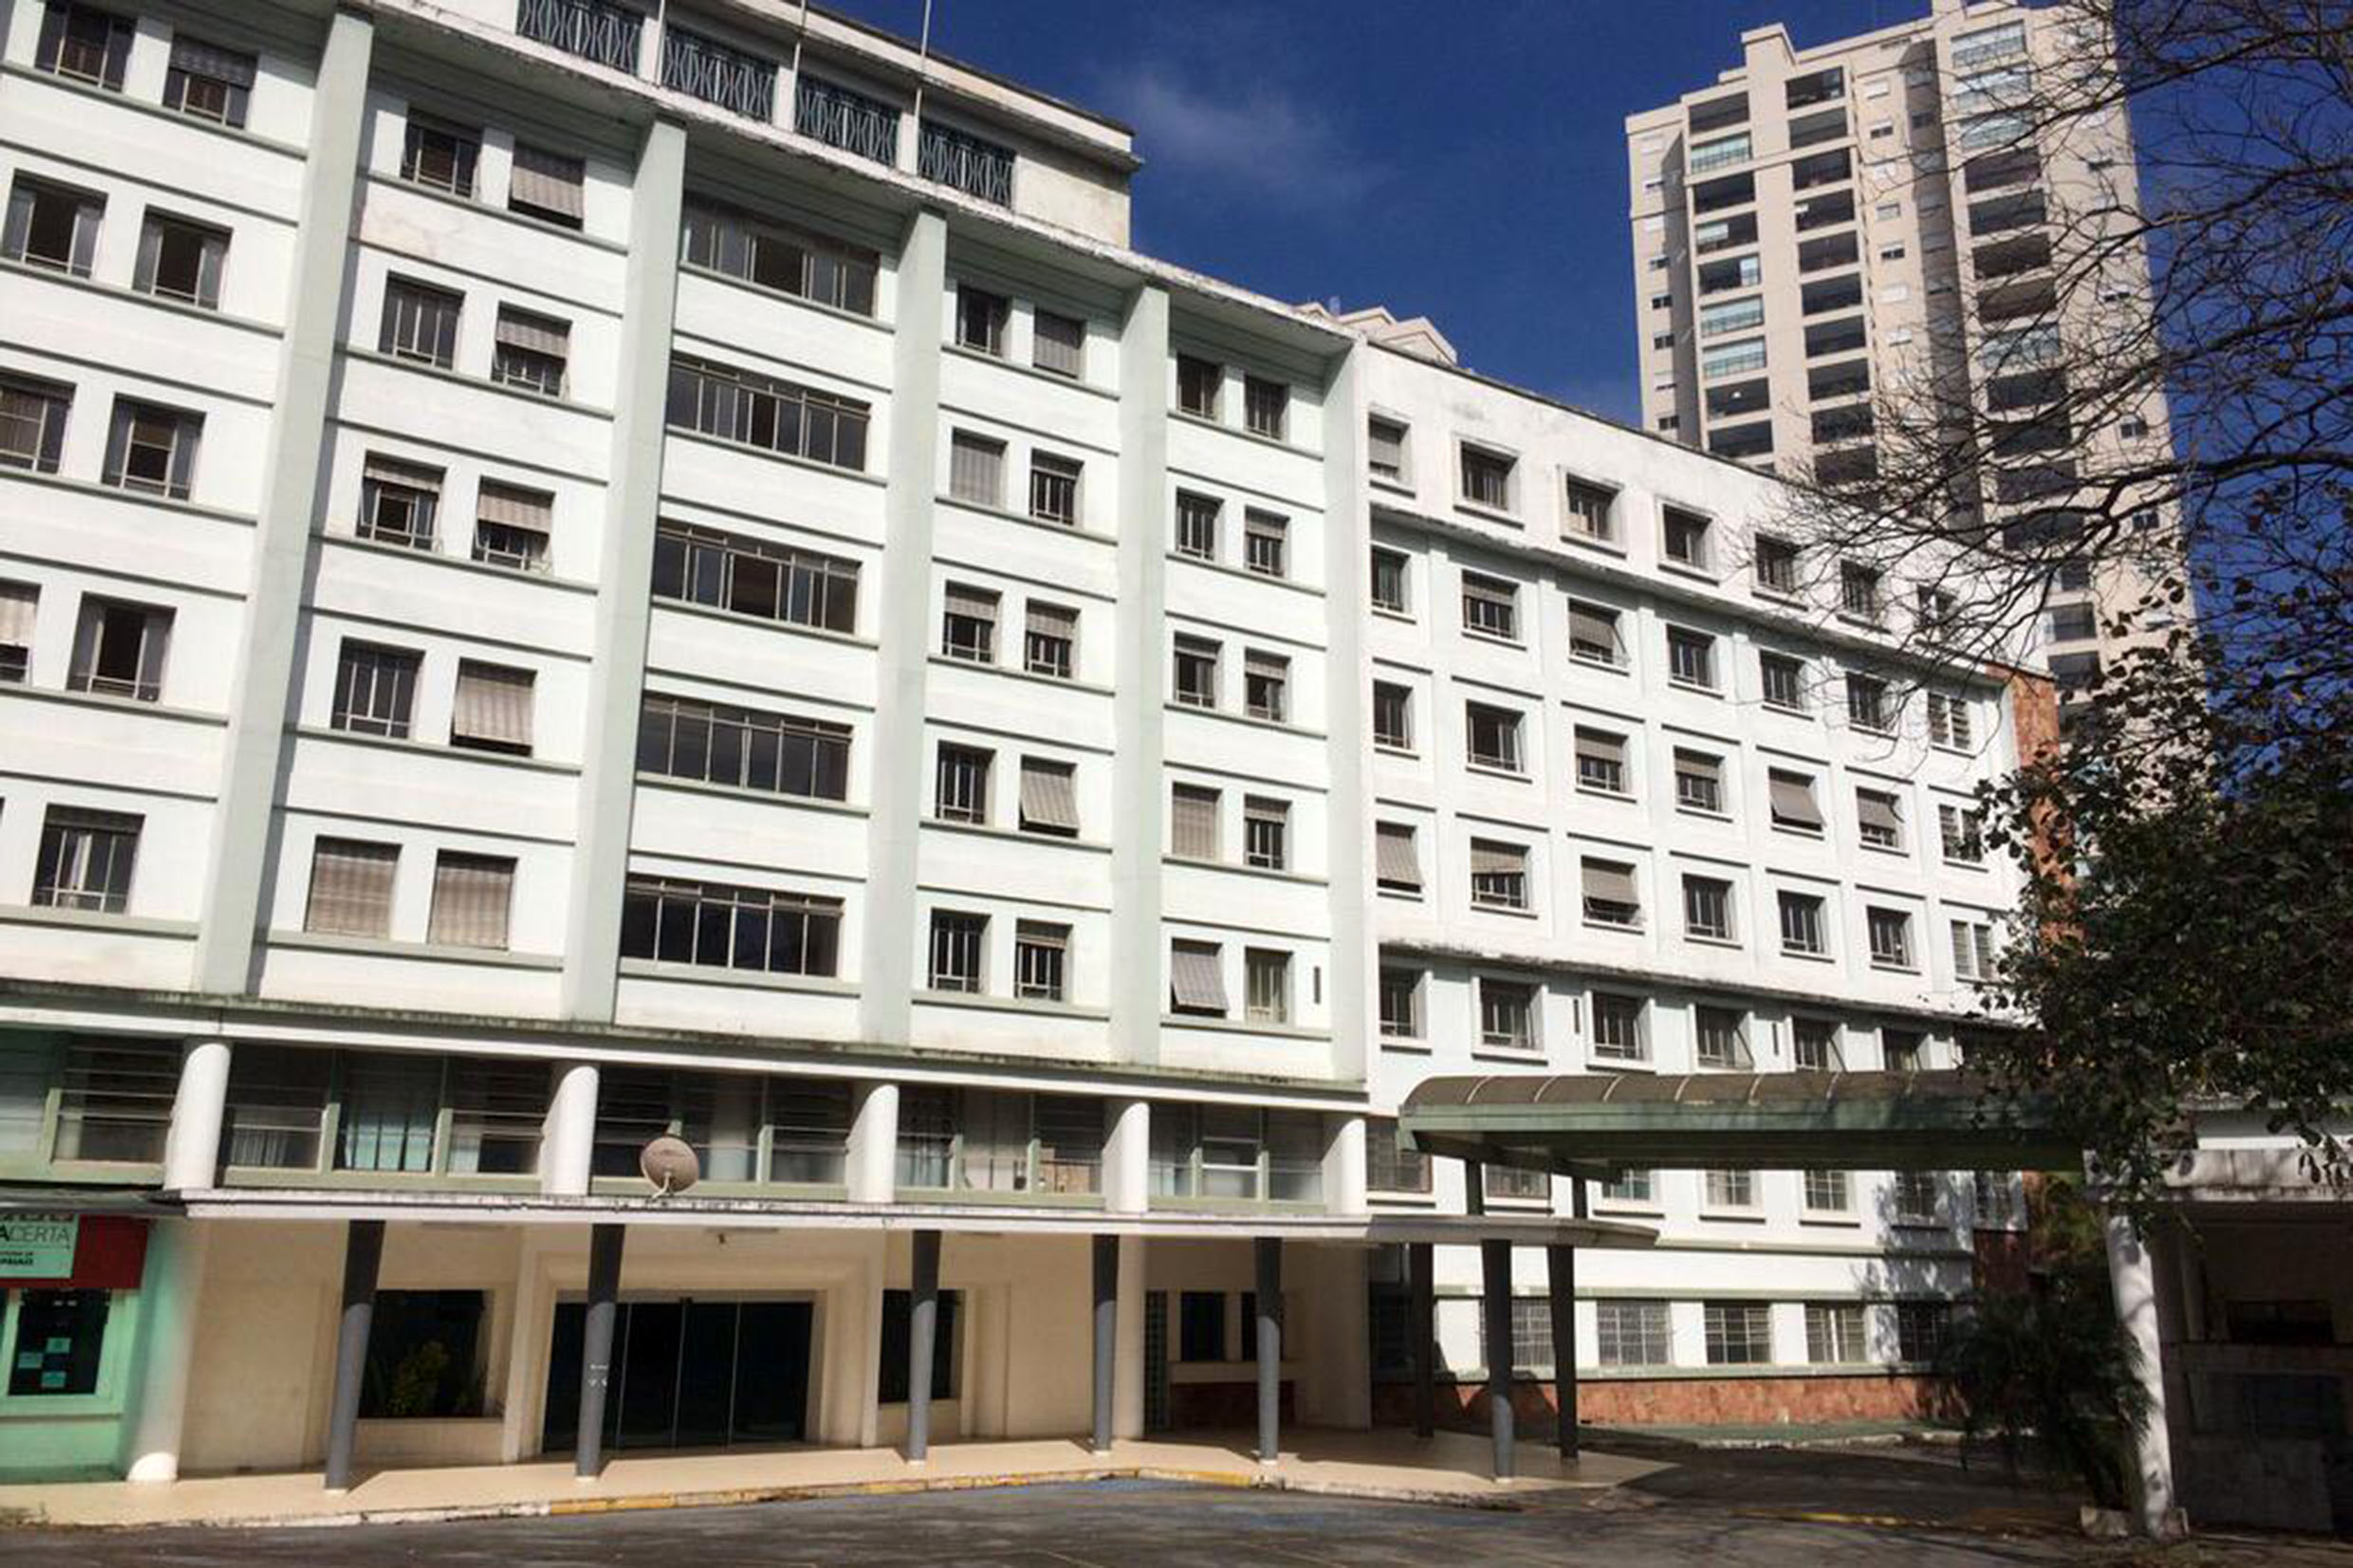 Fachada do hospital<a style='float:right' href='https://www3.al.sp.gov.br/repositorio/noticia/N-03-2020/fg248171.jpg' target=_blank><img src='/_img/material-file-download-white.png' width='14px' alt='Clique para baixar a imagem'></a>